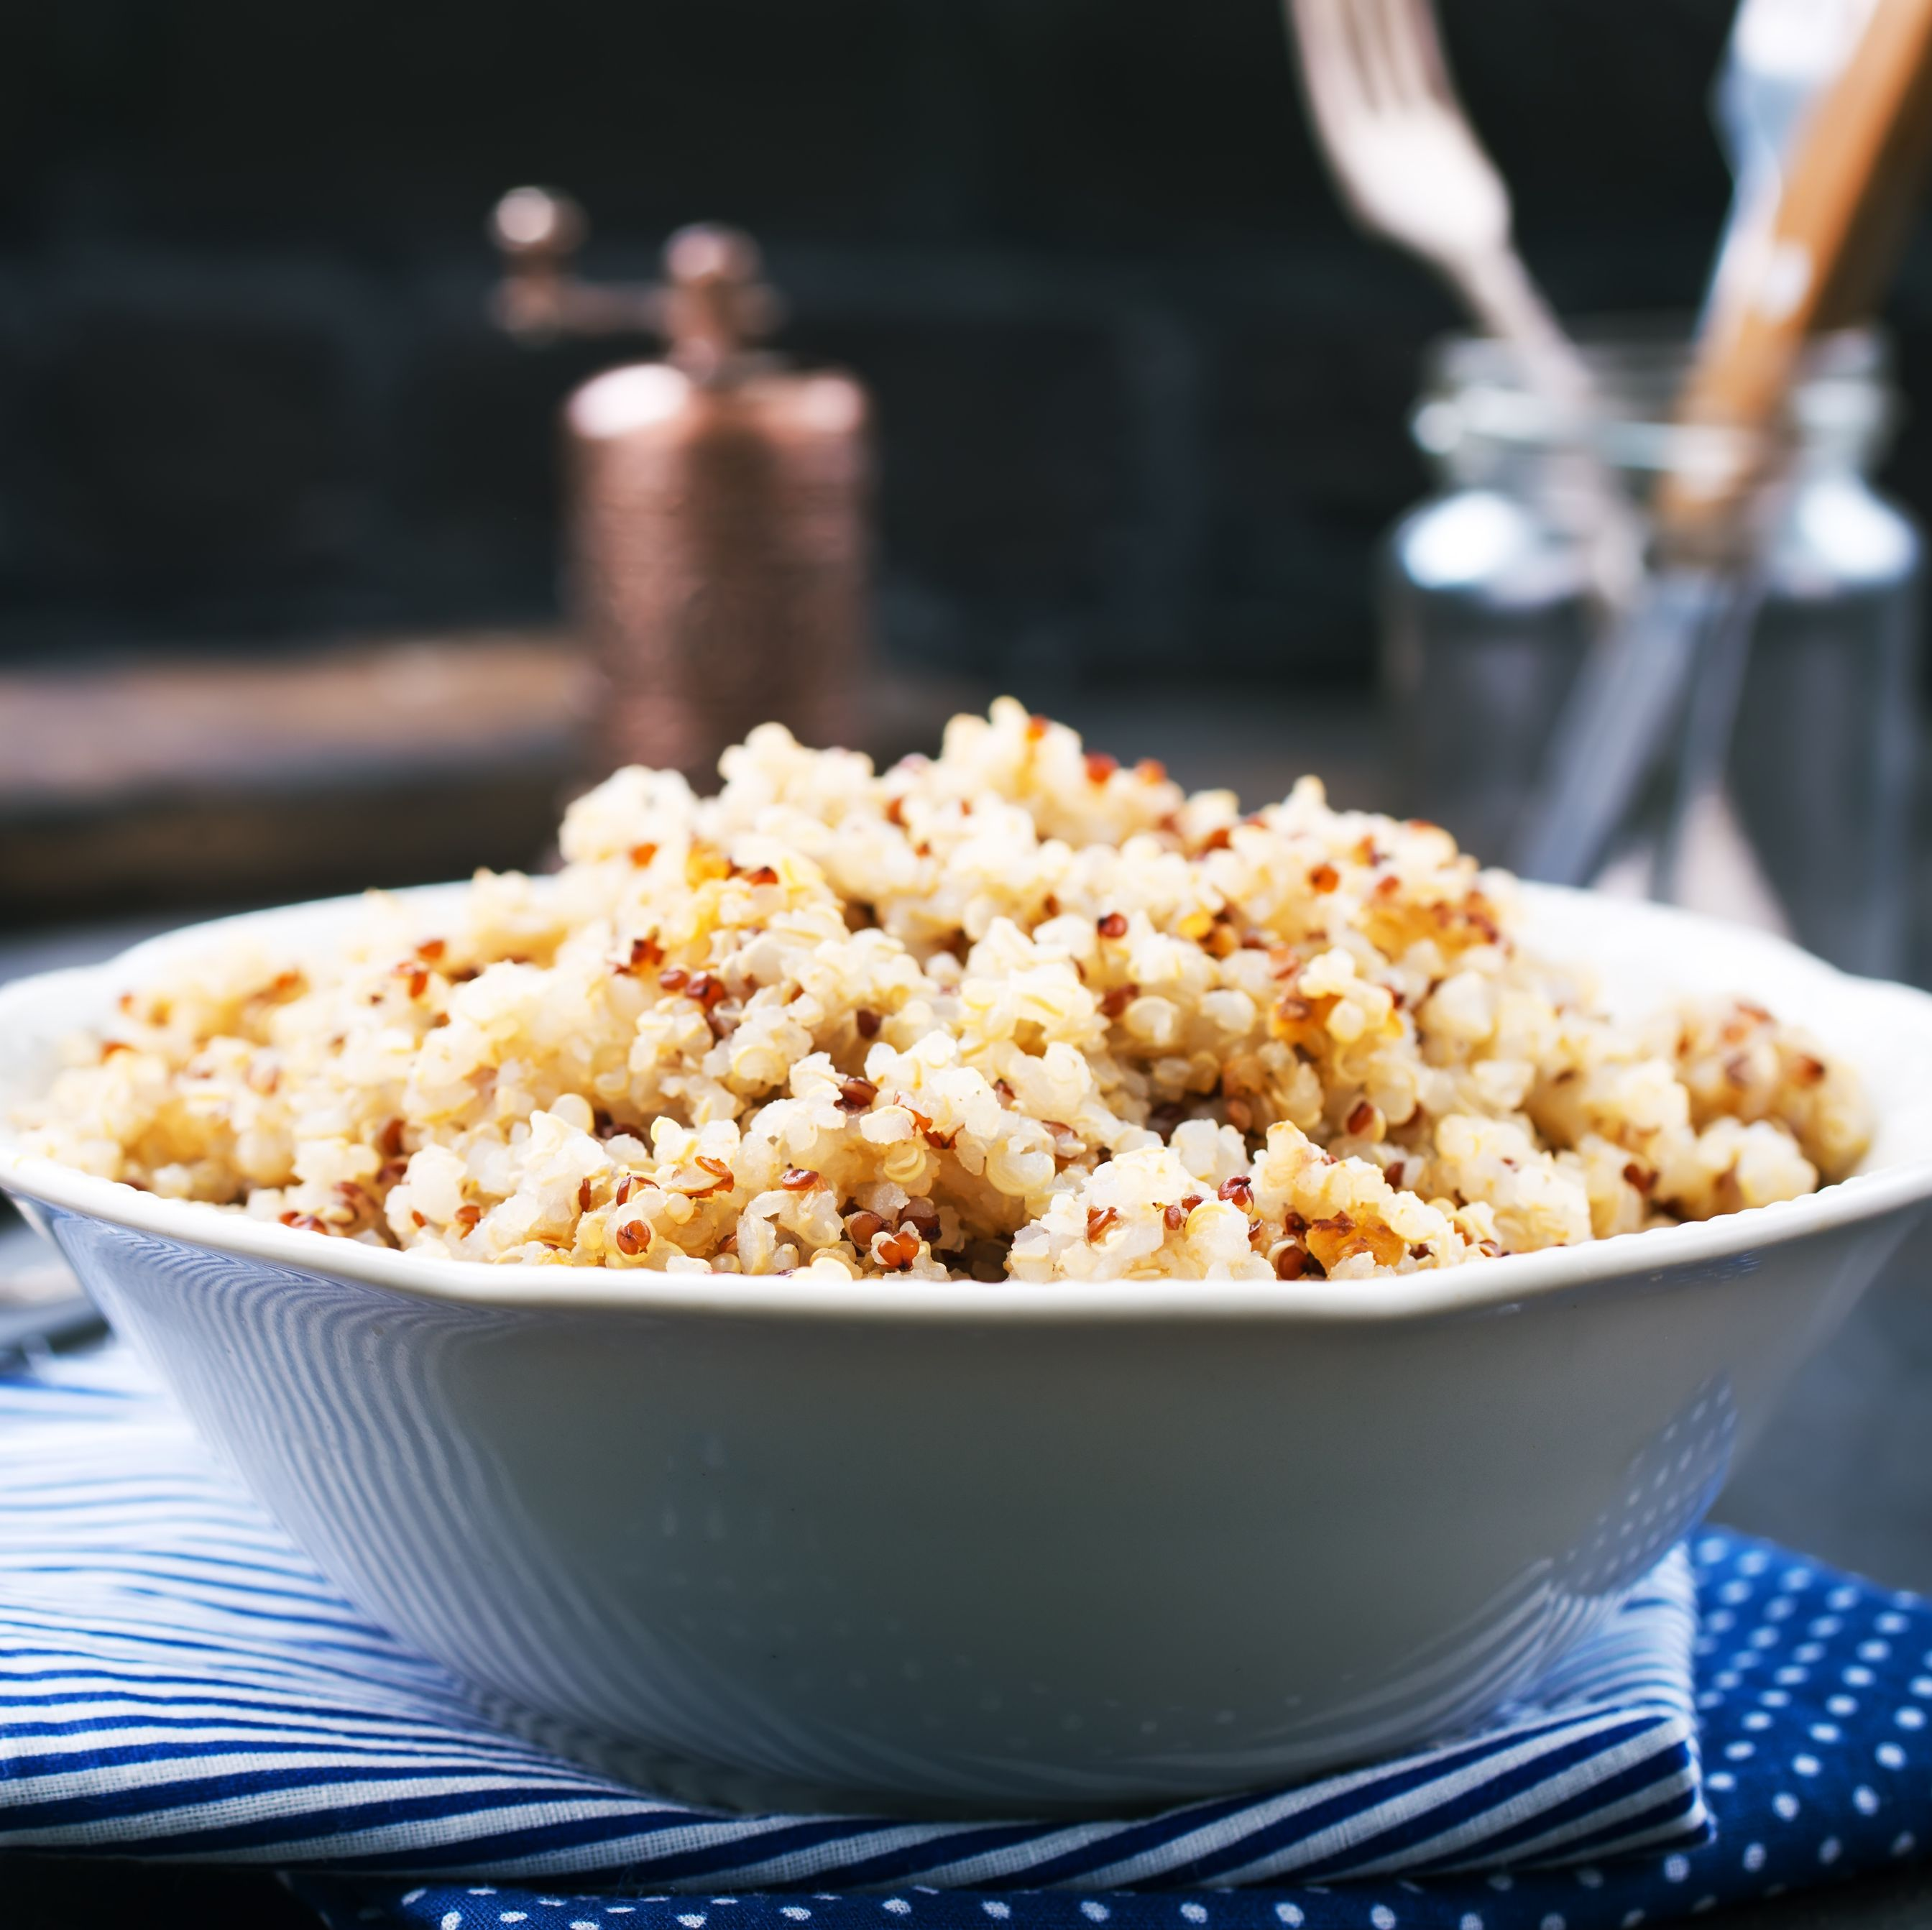 Is Quinoa Allowed on the Paleo Diet, or What?